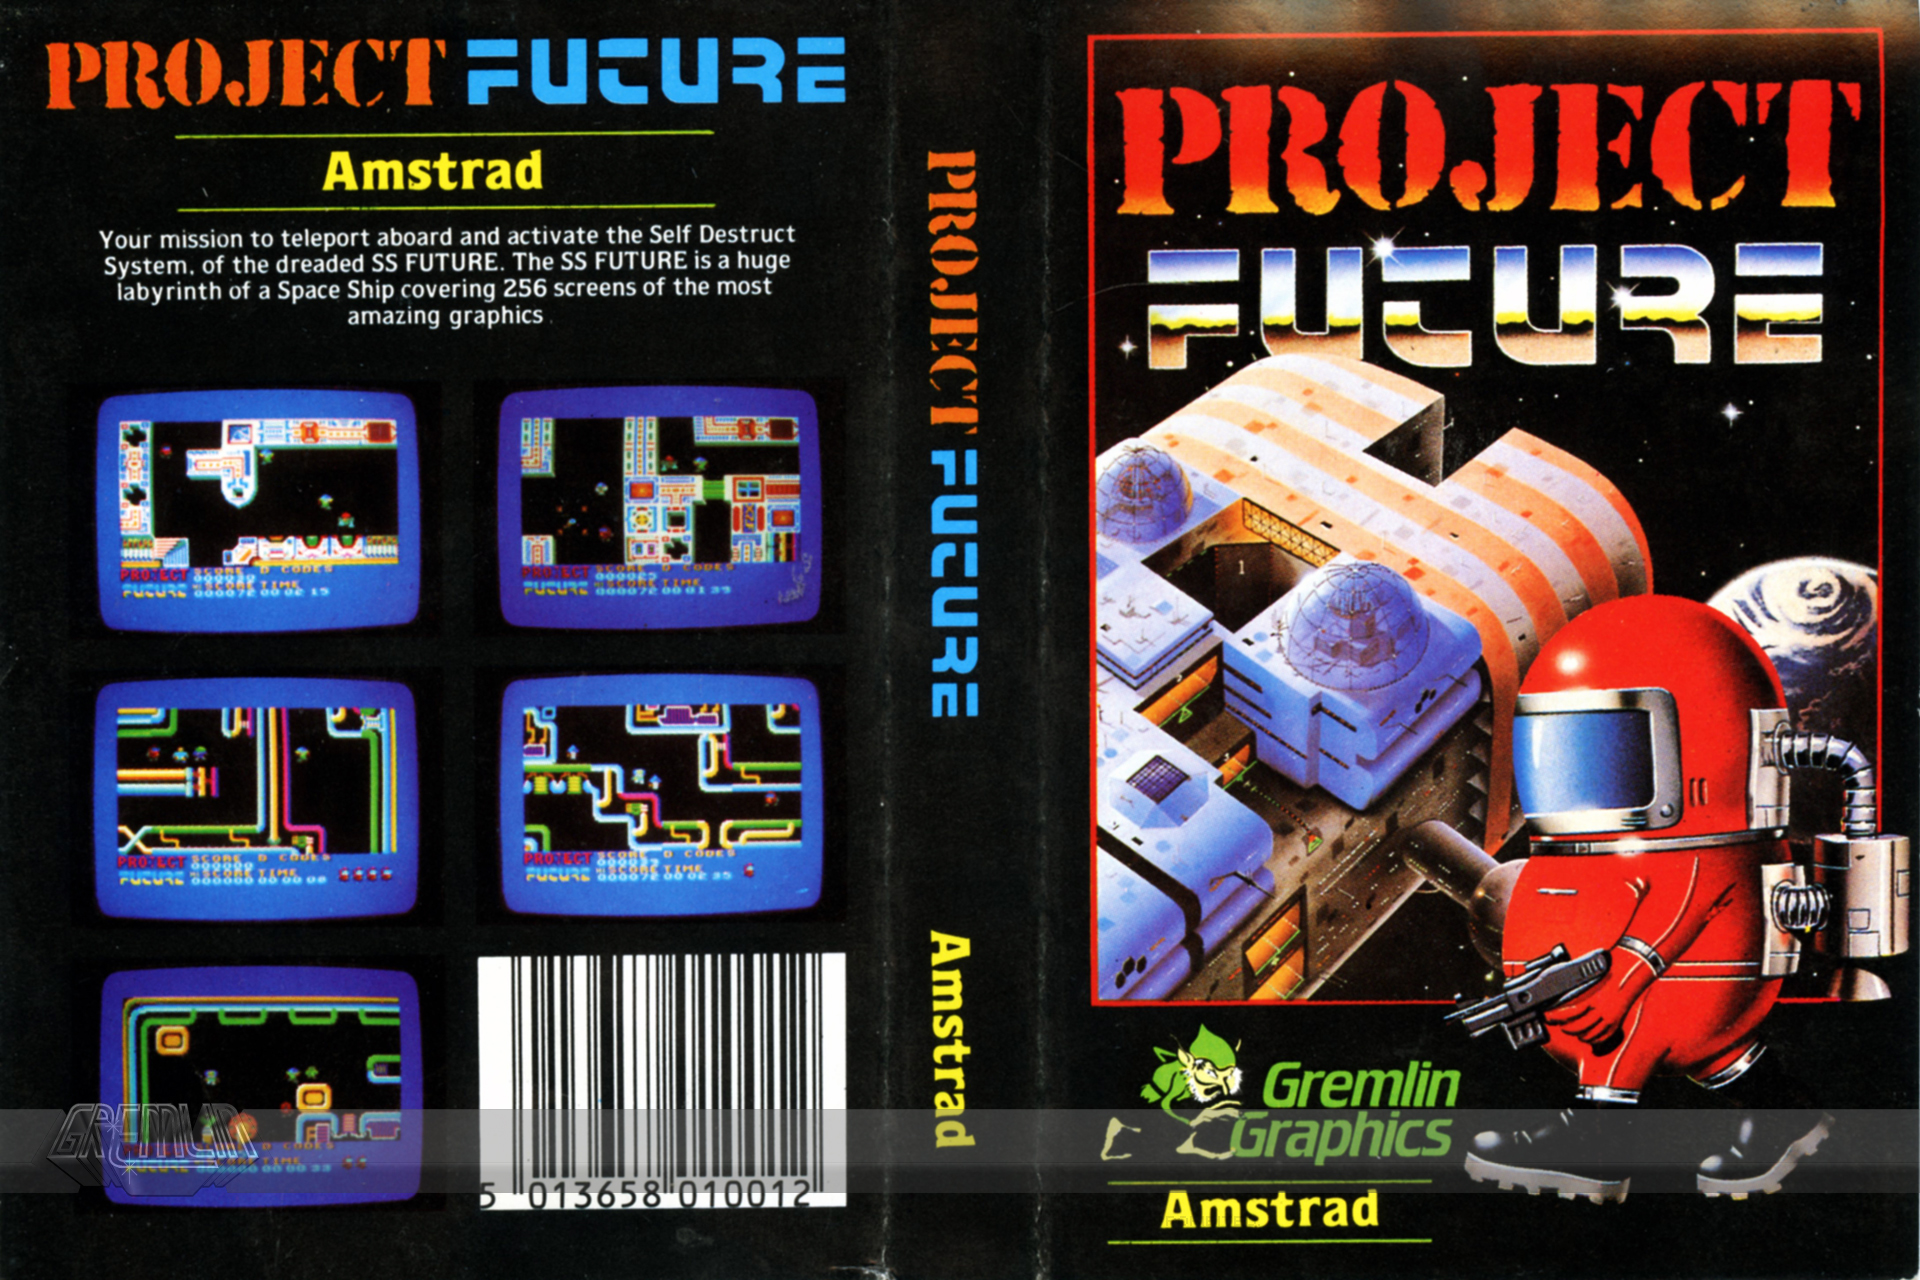 Project Future (Amstrad)